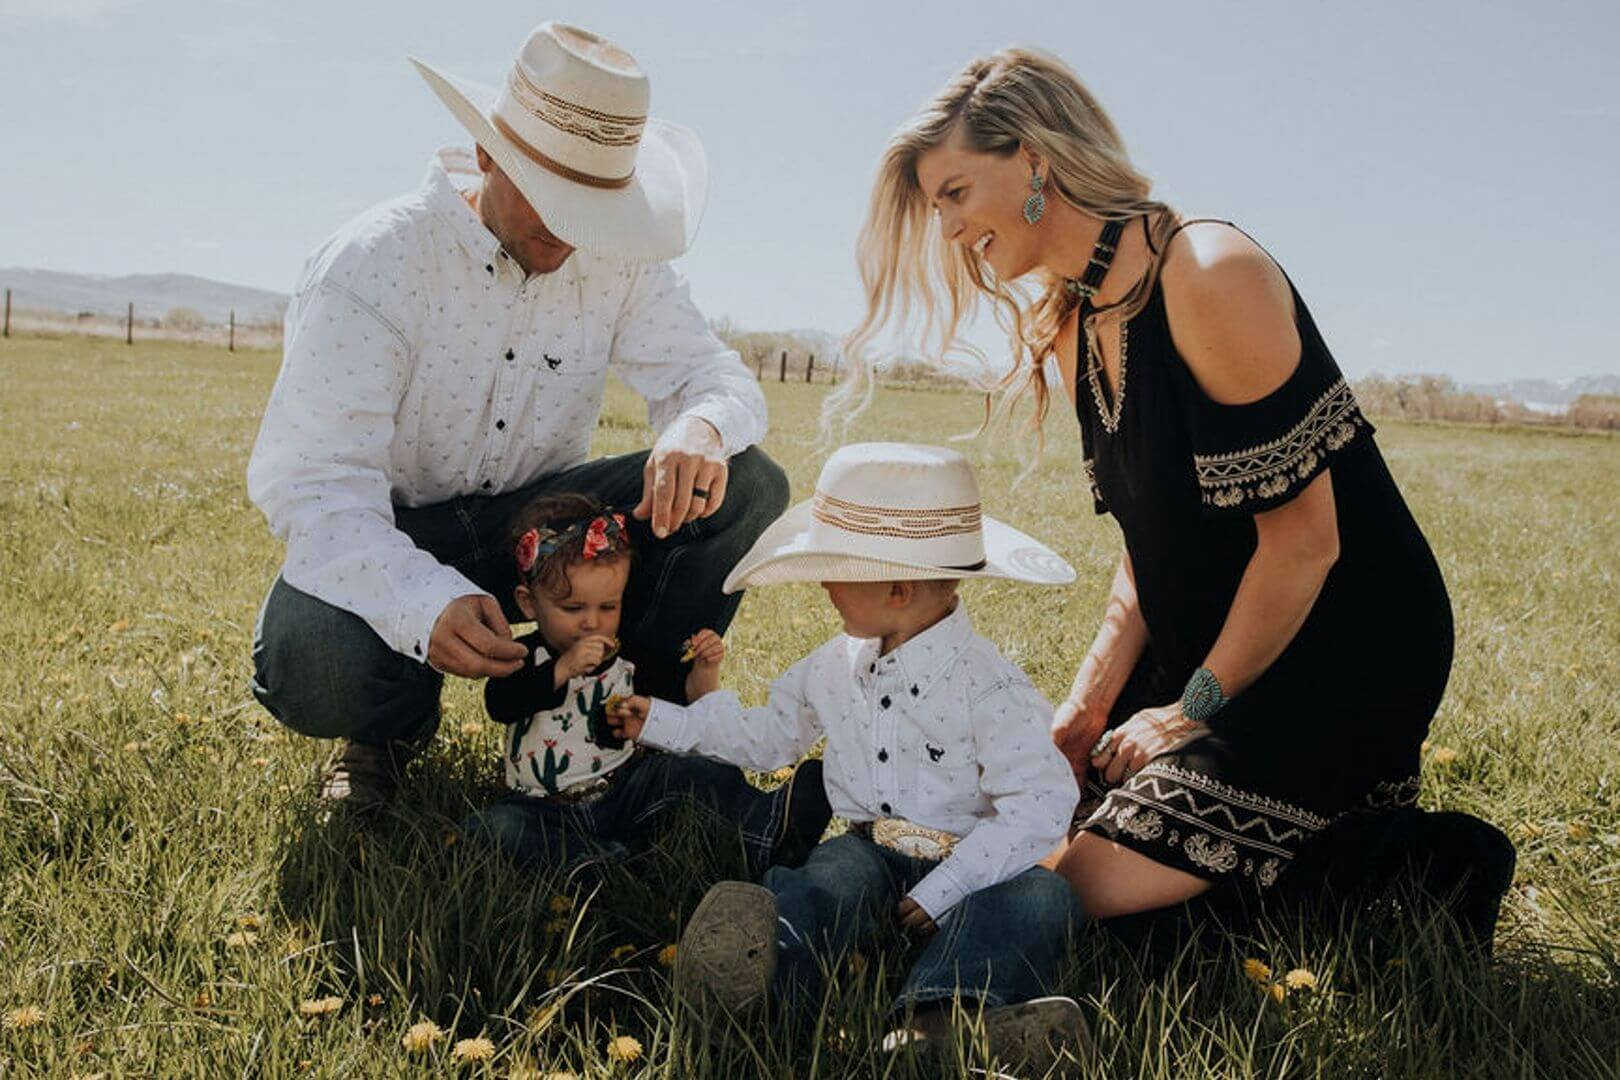 Western Family Fun: Your Guide to Dressing the Family In Matching Western Attire